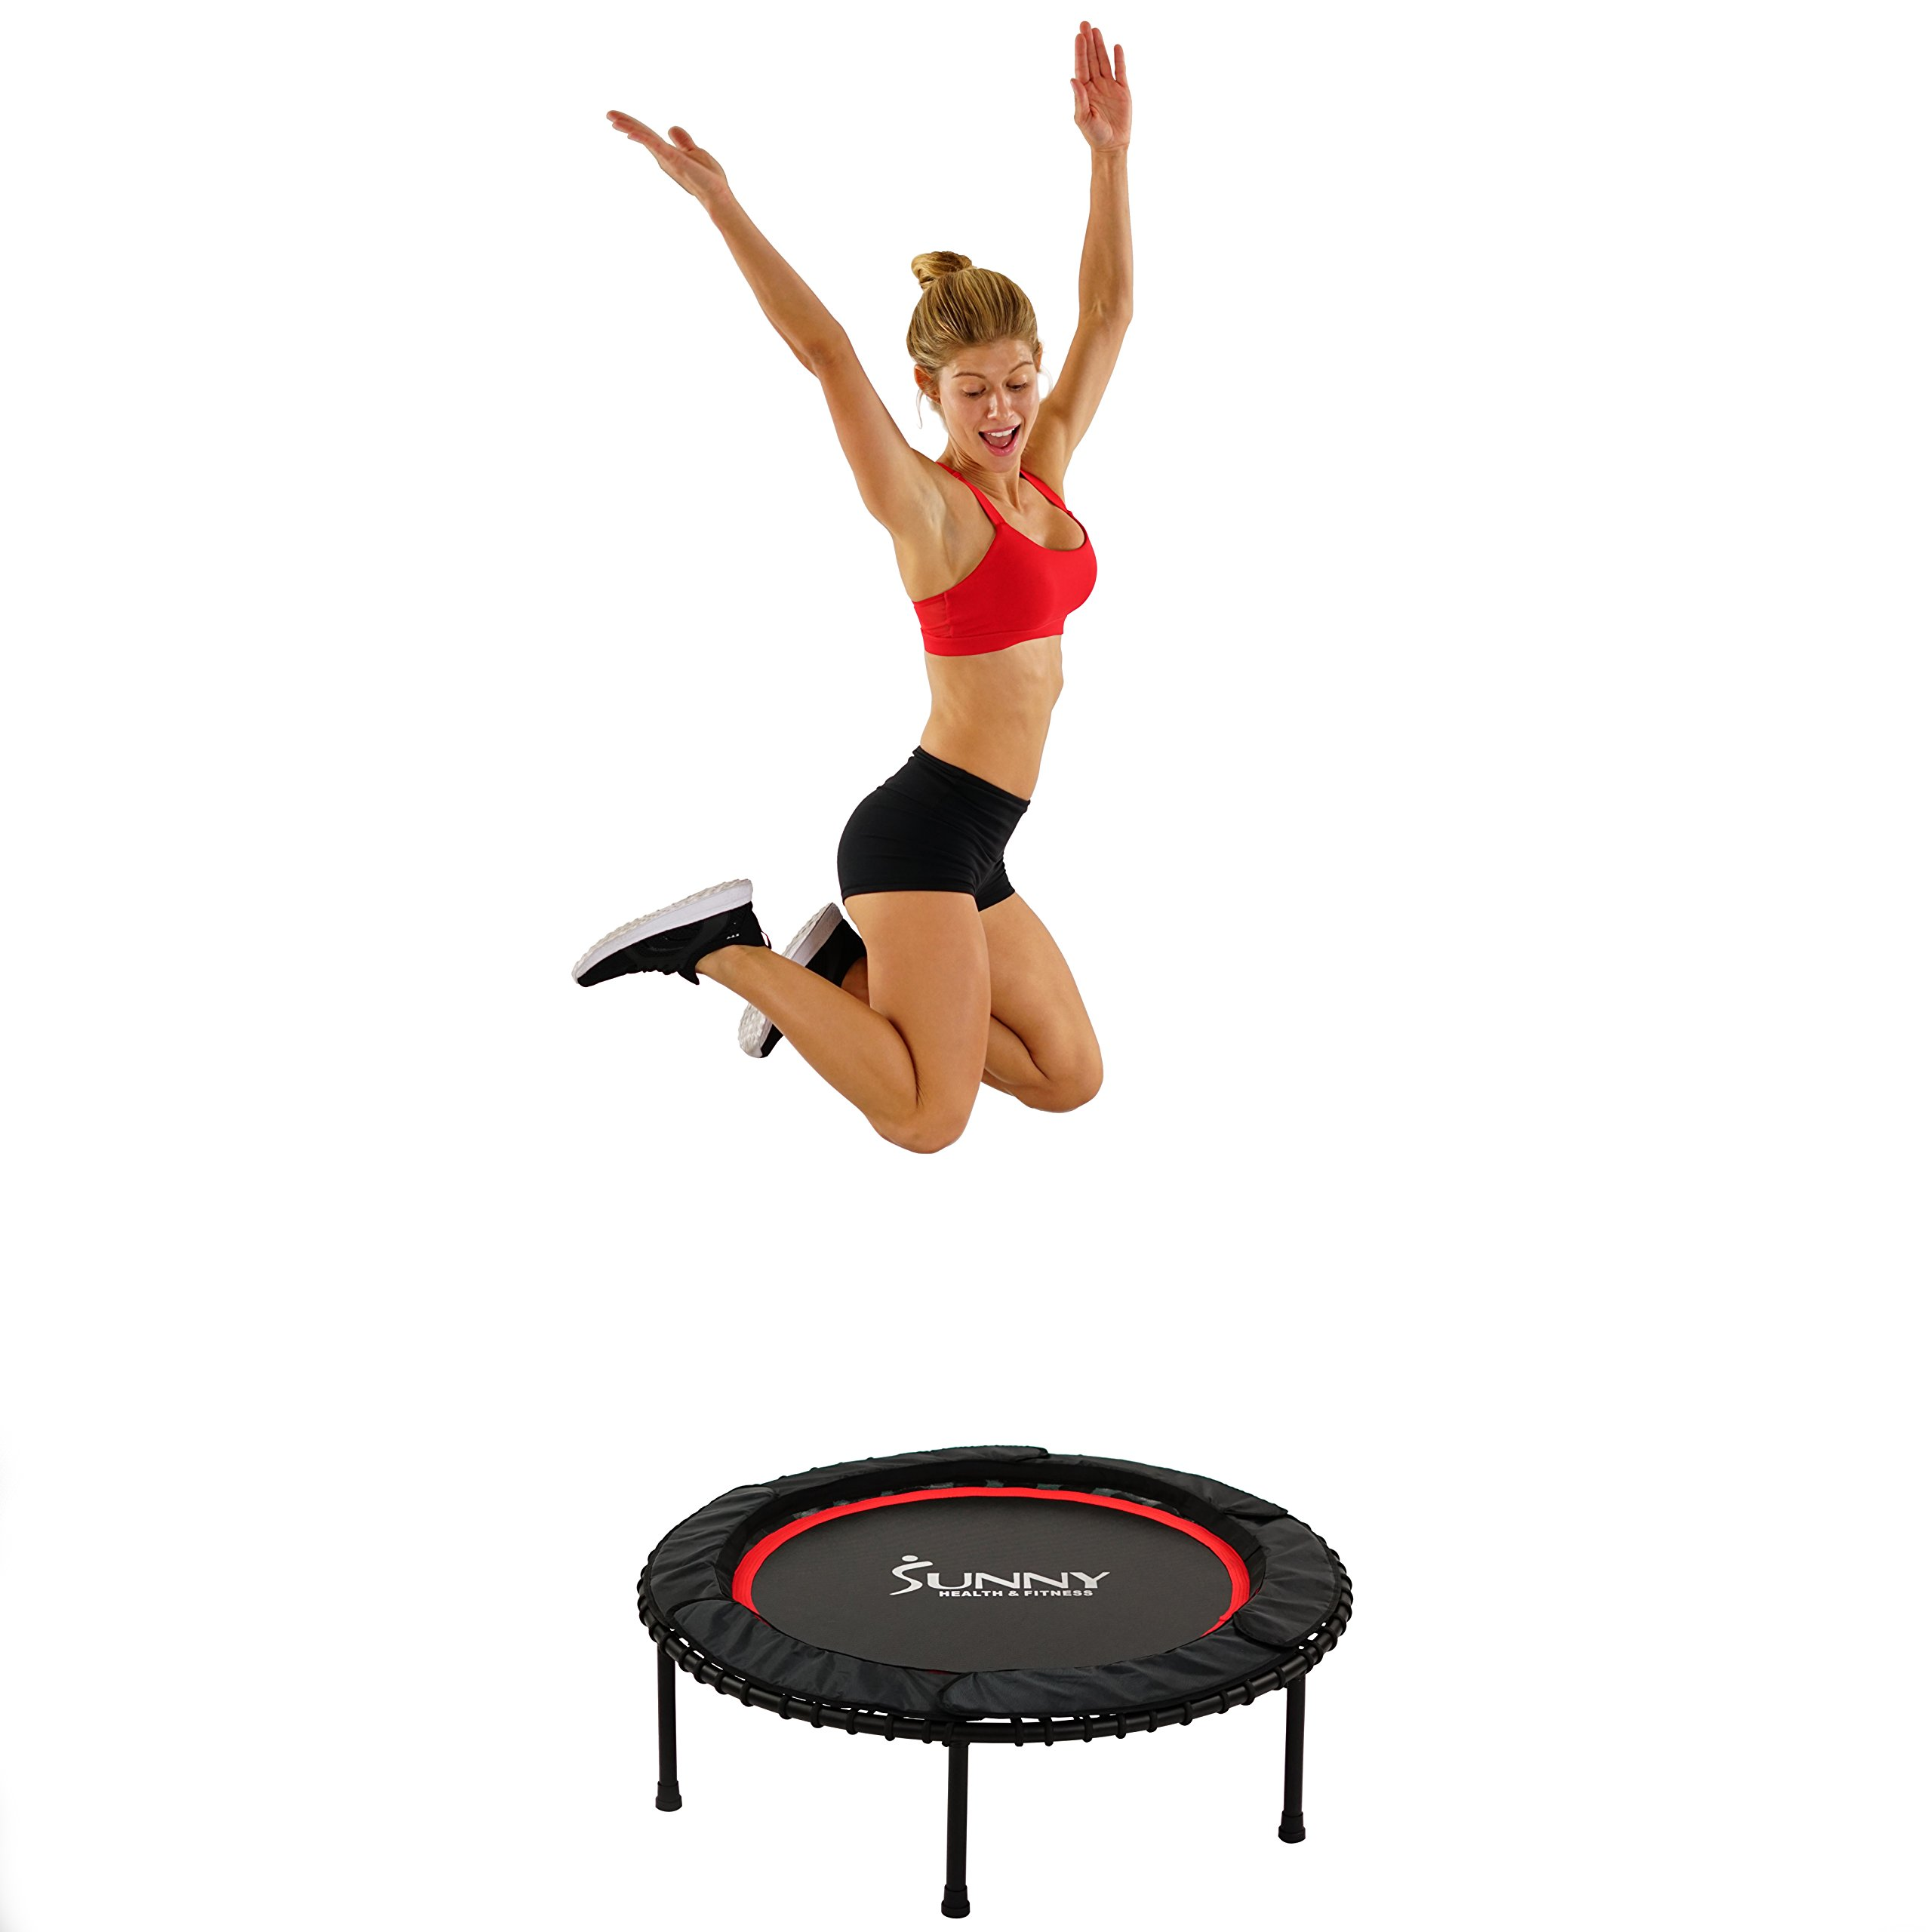 Sunny Health & Fitness 41'' Portable and Steel Framed Fitness Trampoline Rebounder with Premium High Bounce Bungee Cords